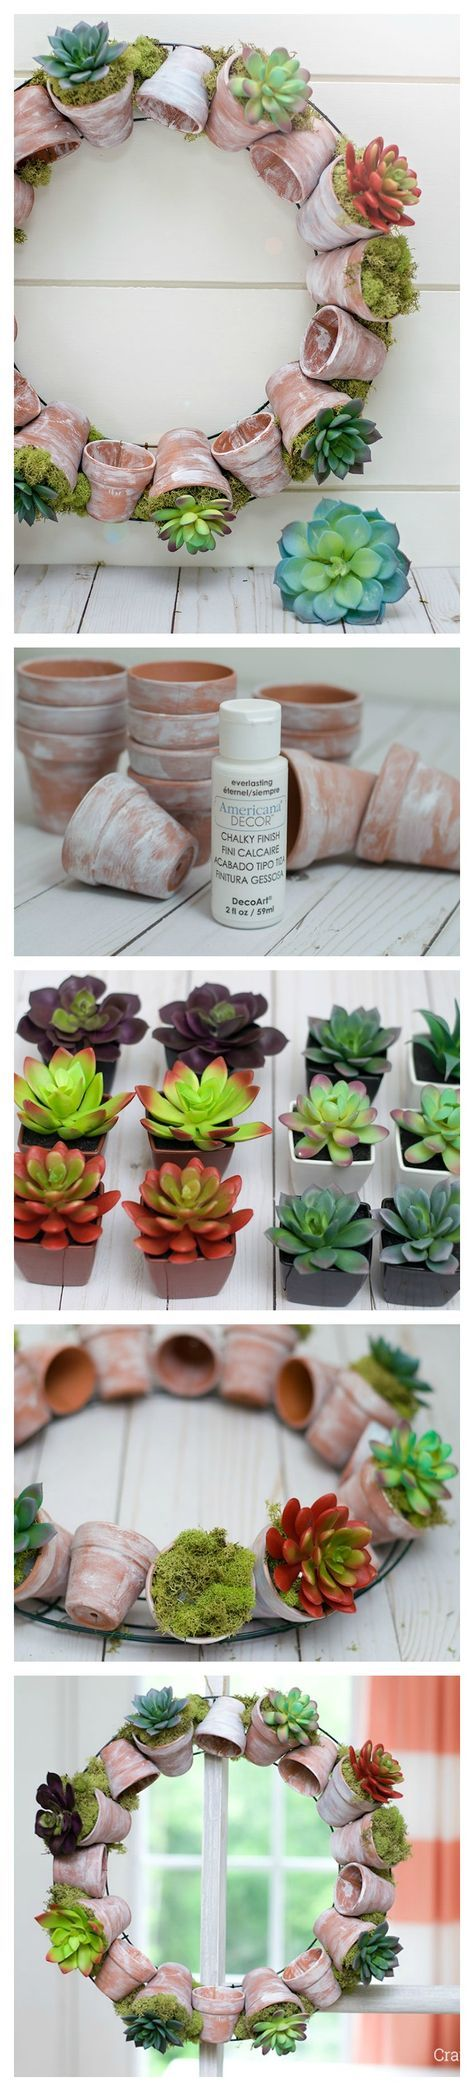 Create a long lasting DIY Succulent Wreath for Spring or Summer! This Wreath is so simple to make and the faux succulents are perfect!